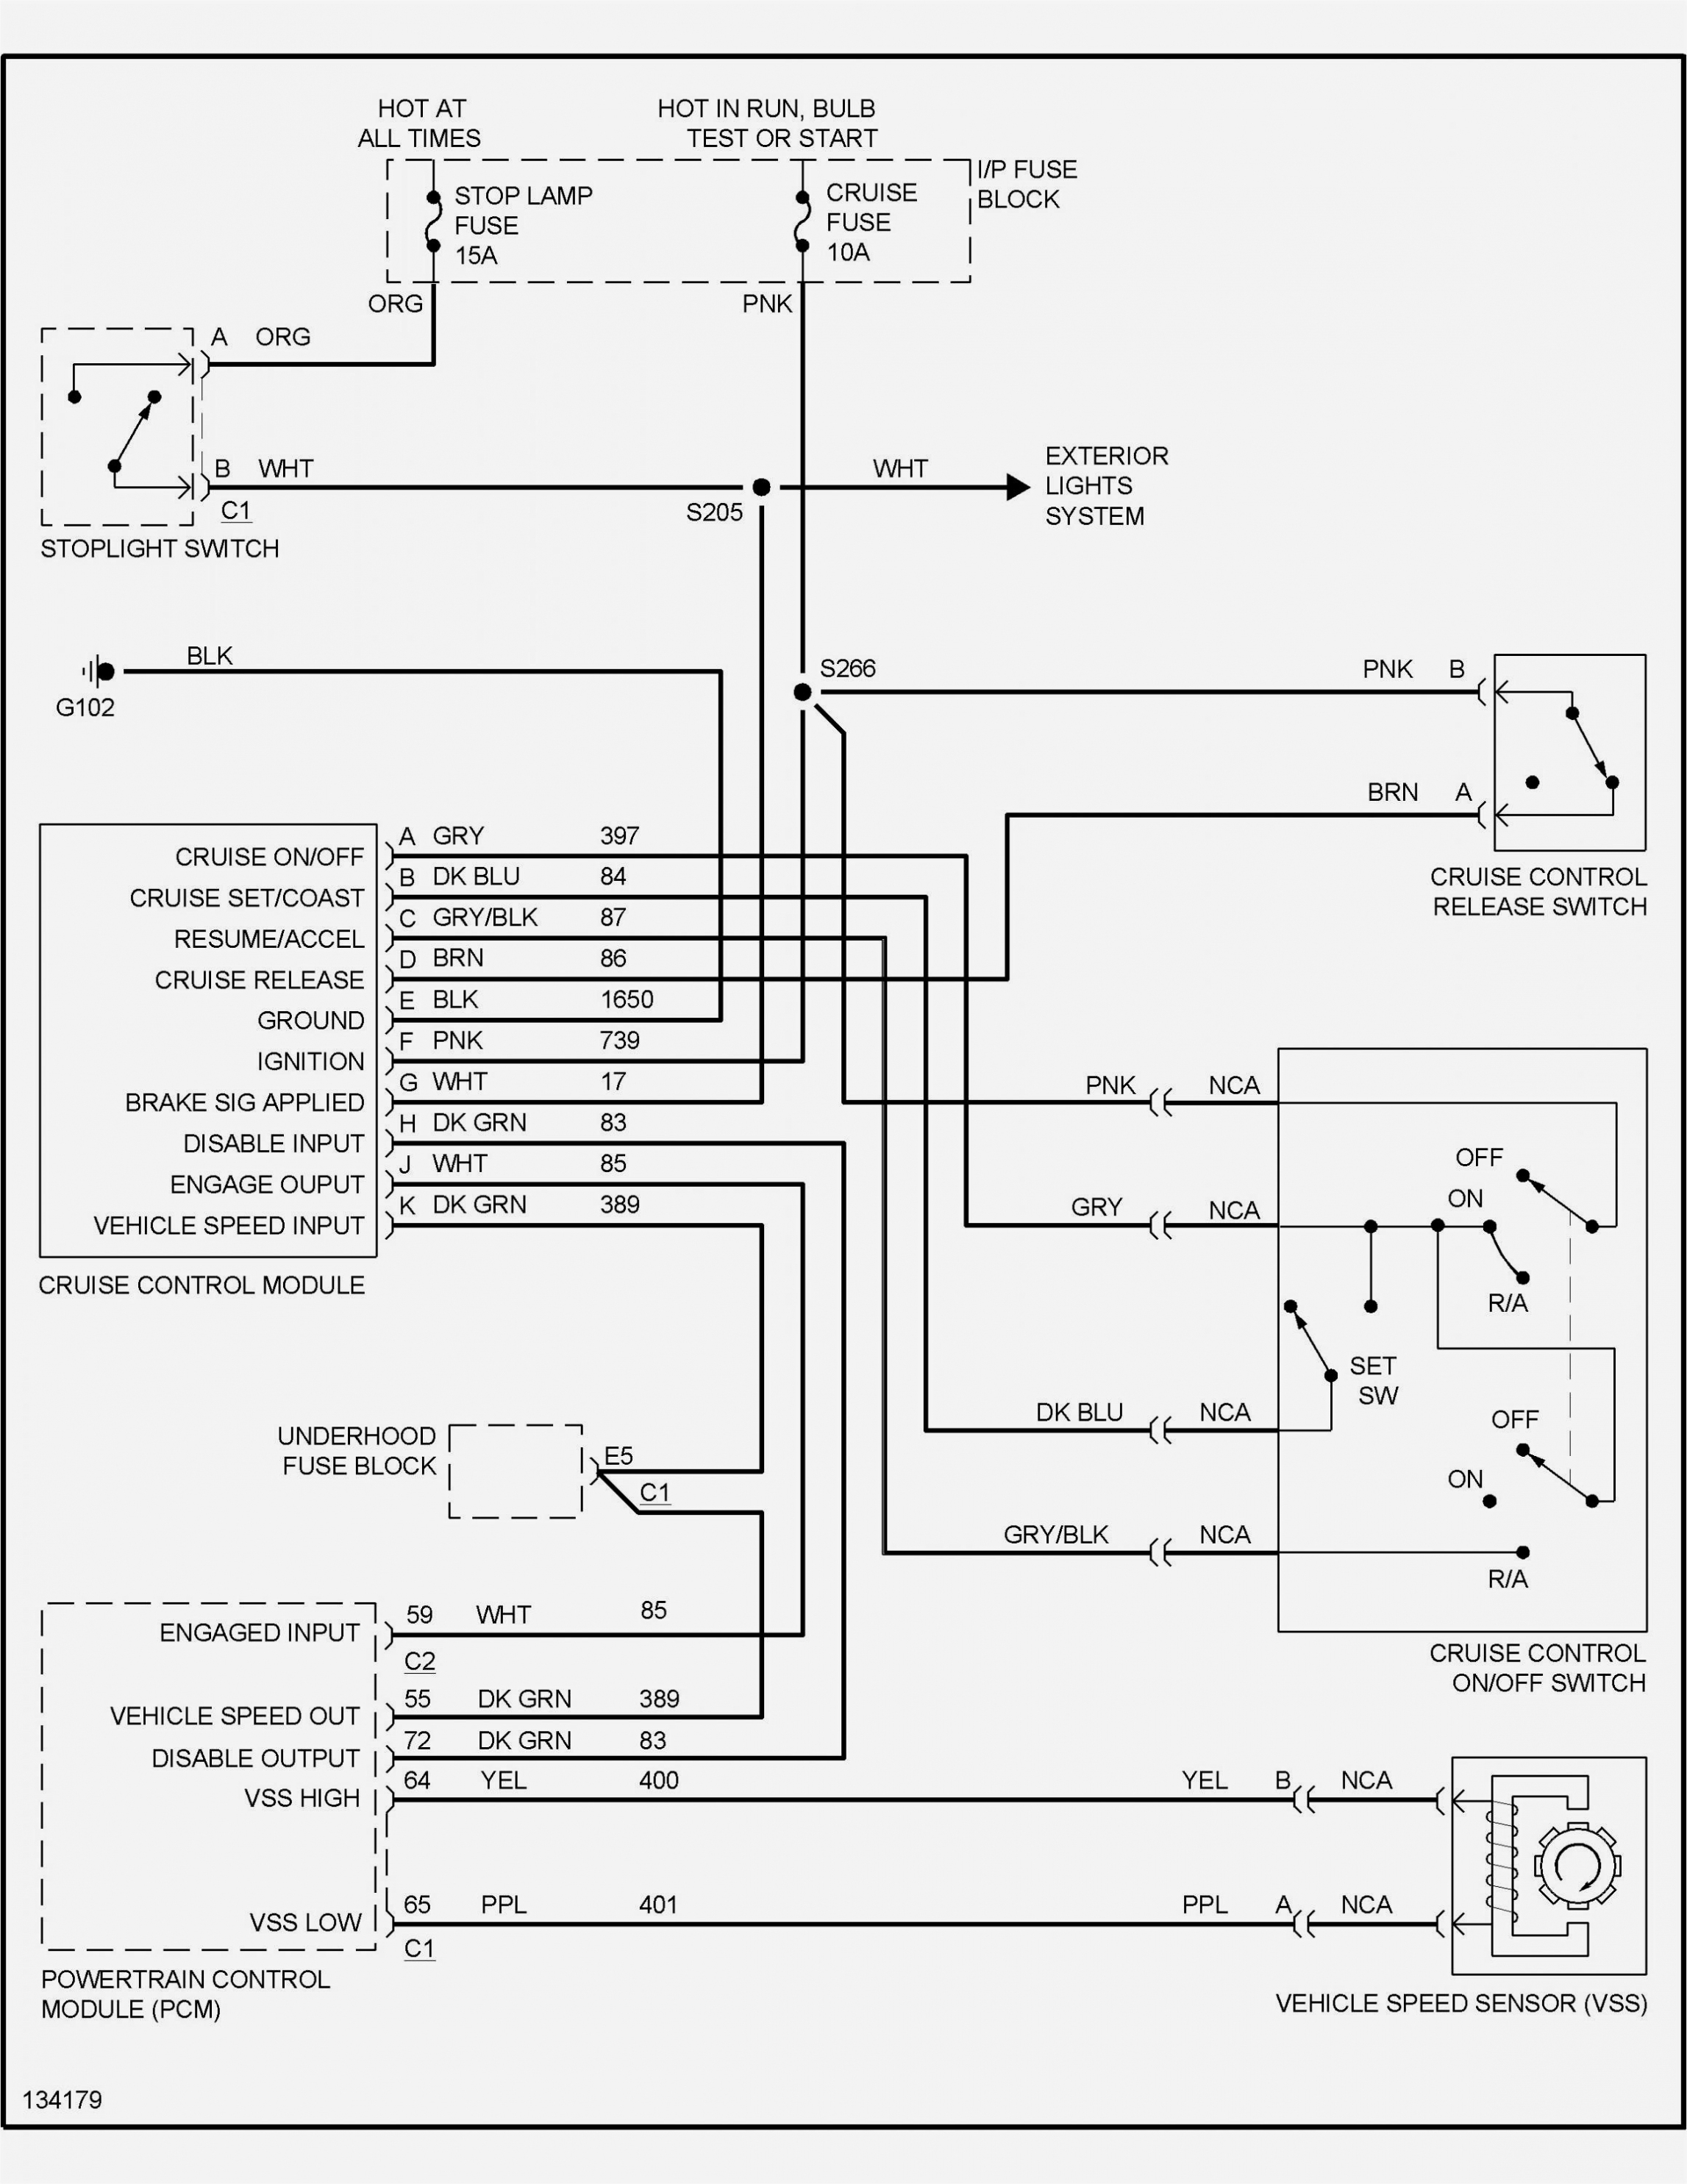 Sony Cdx Gt34W Wiring Schematics For Model | Wiring Diagram - Sony Explod Wiring Diagram